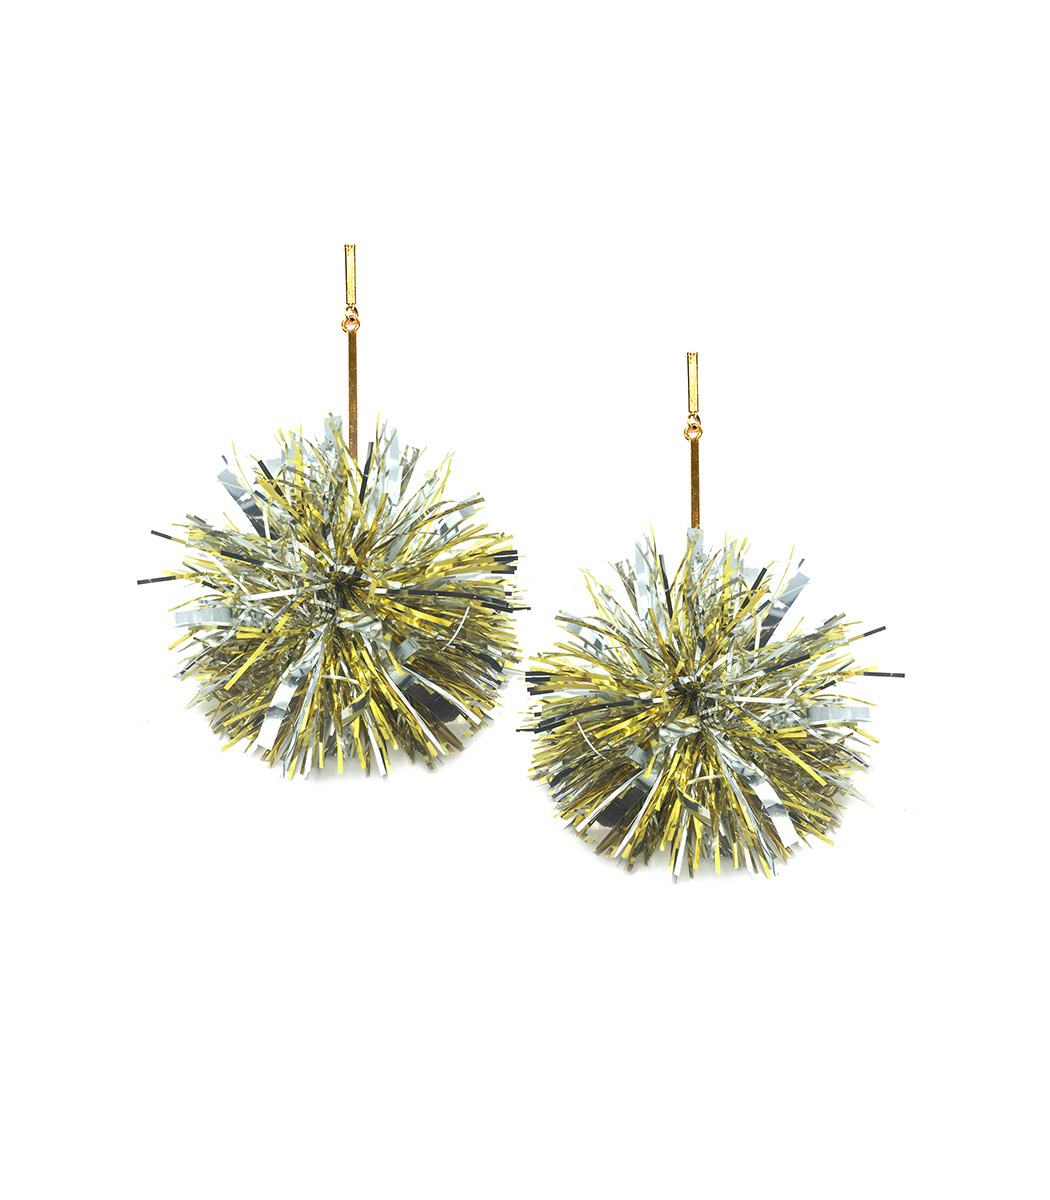 """TULESTE 4"""" Gold And Silver Lurex Pom Pom Earrings in Gold/Silver"""